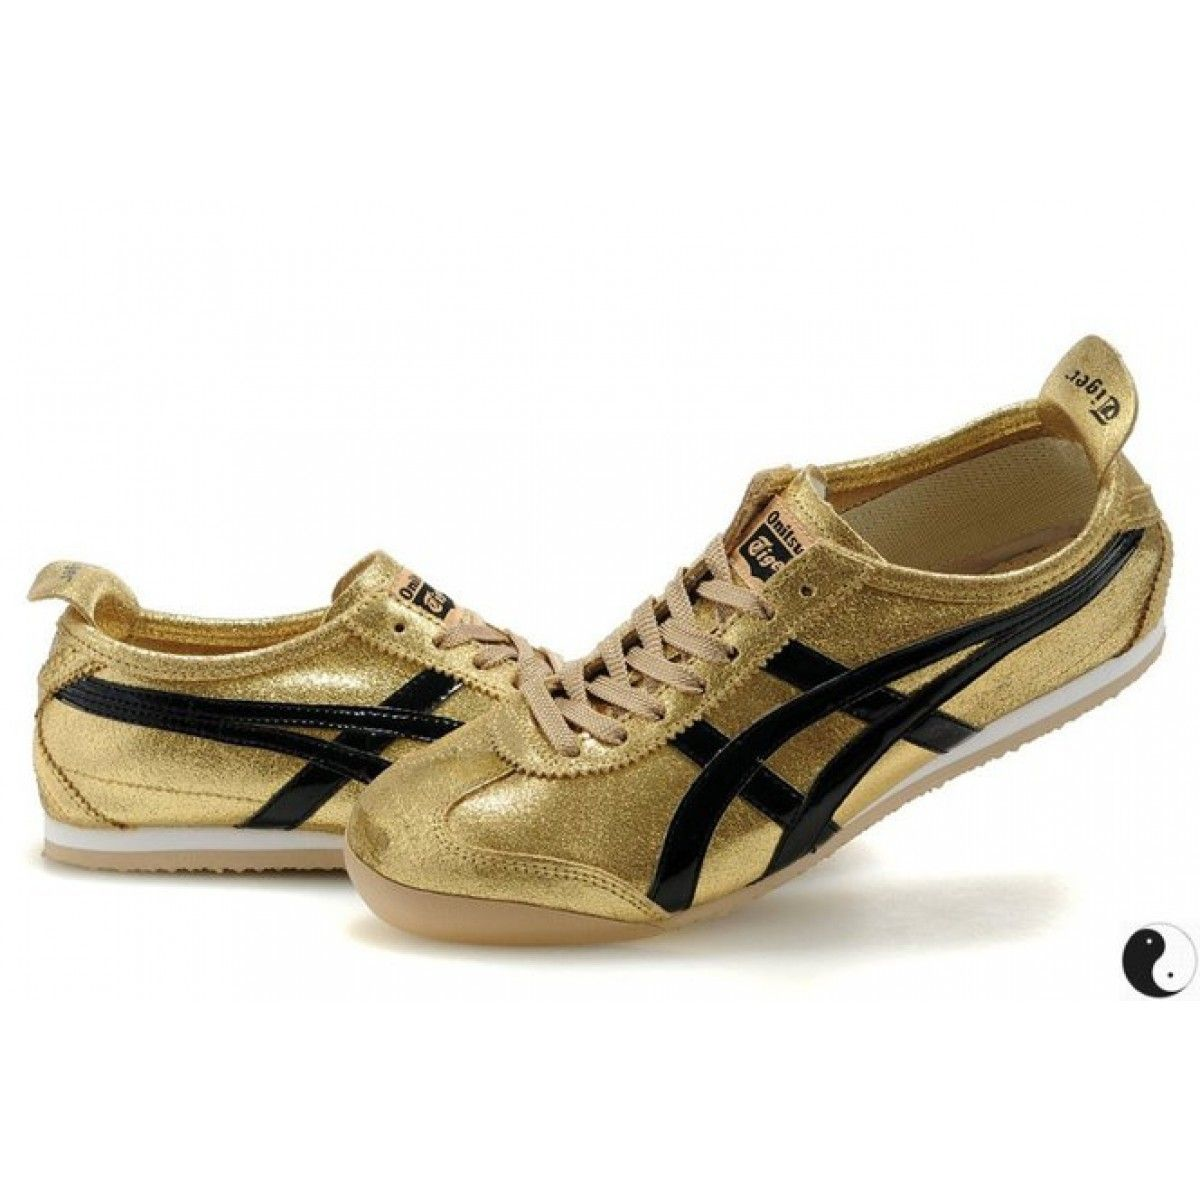 detailed look 22d07 6f4cb Asics Onitsuka Tiger Mexico 66 Mens Shoes Gold Black